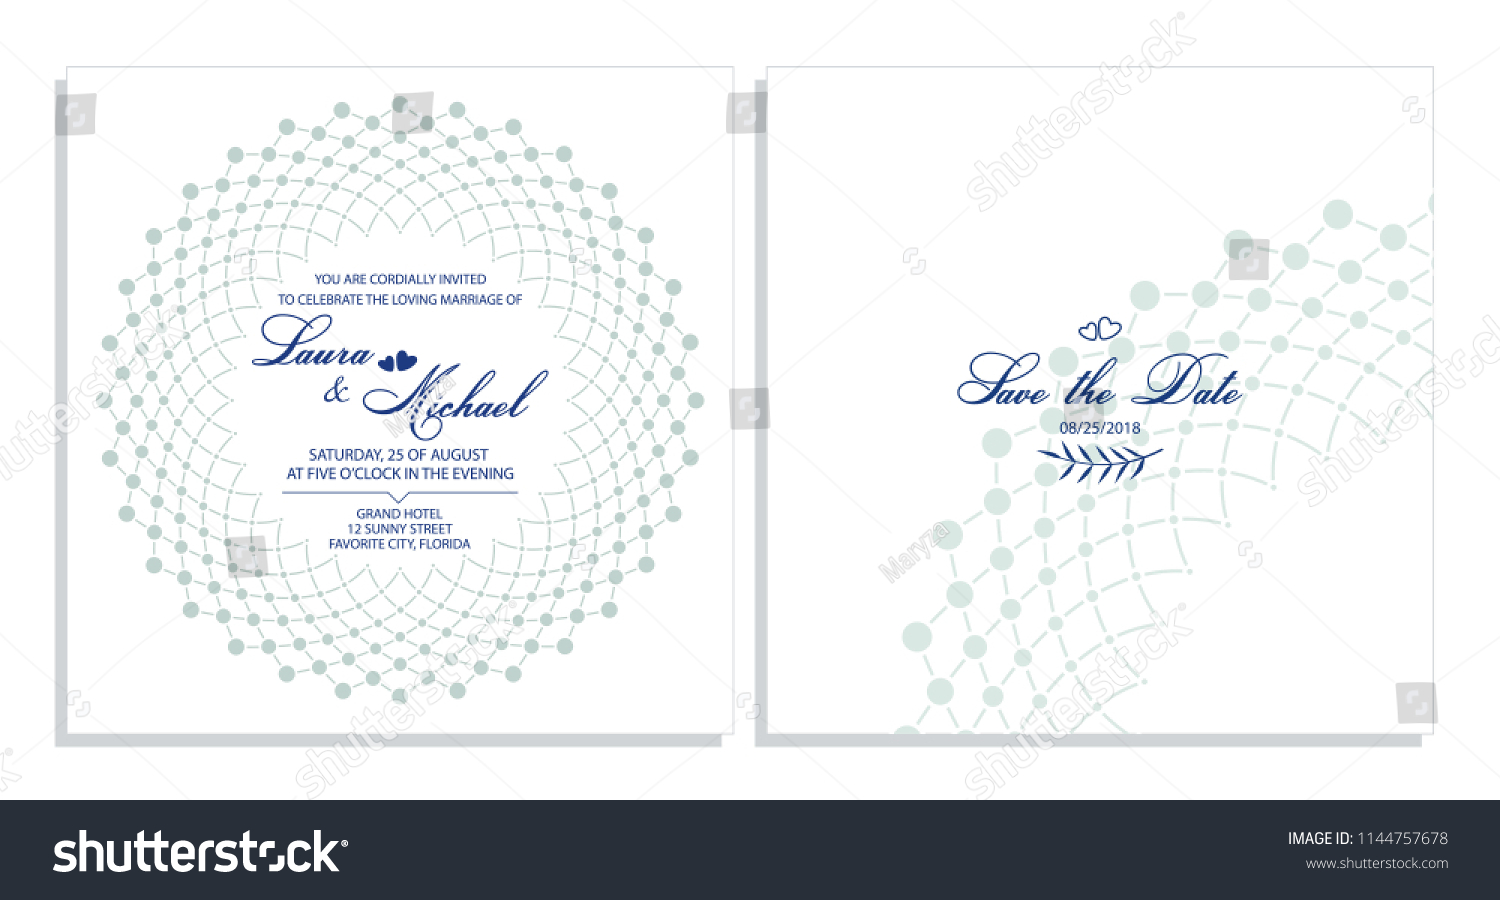 wedding invitation card template for the invitation delicate background of dots and lines